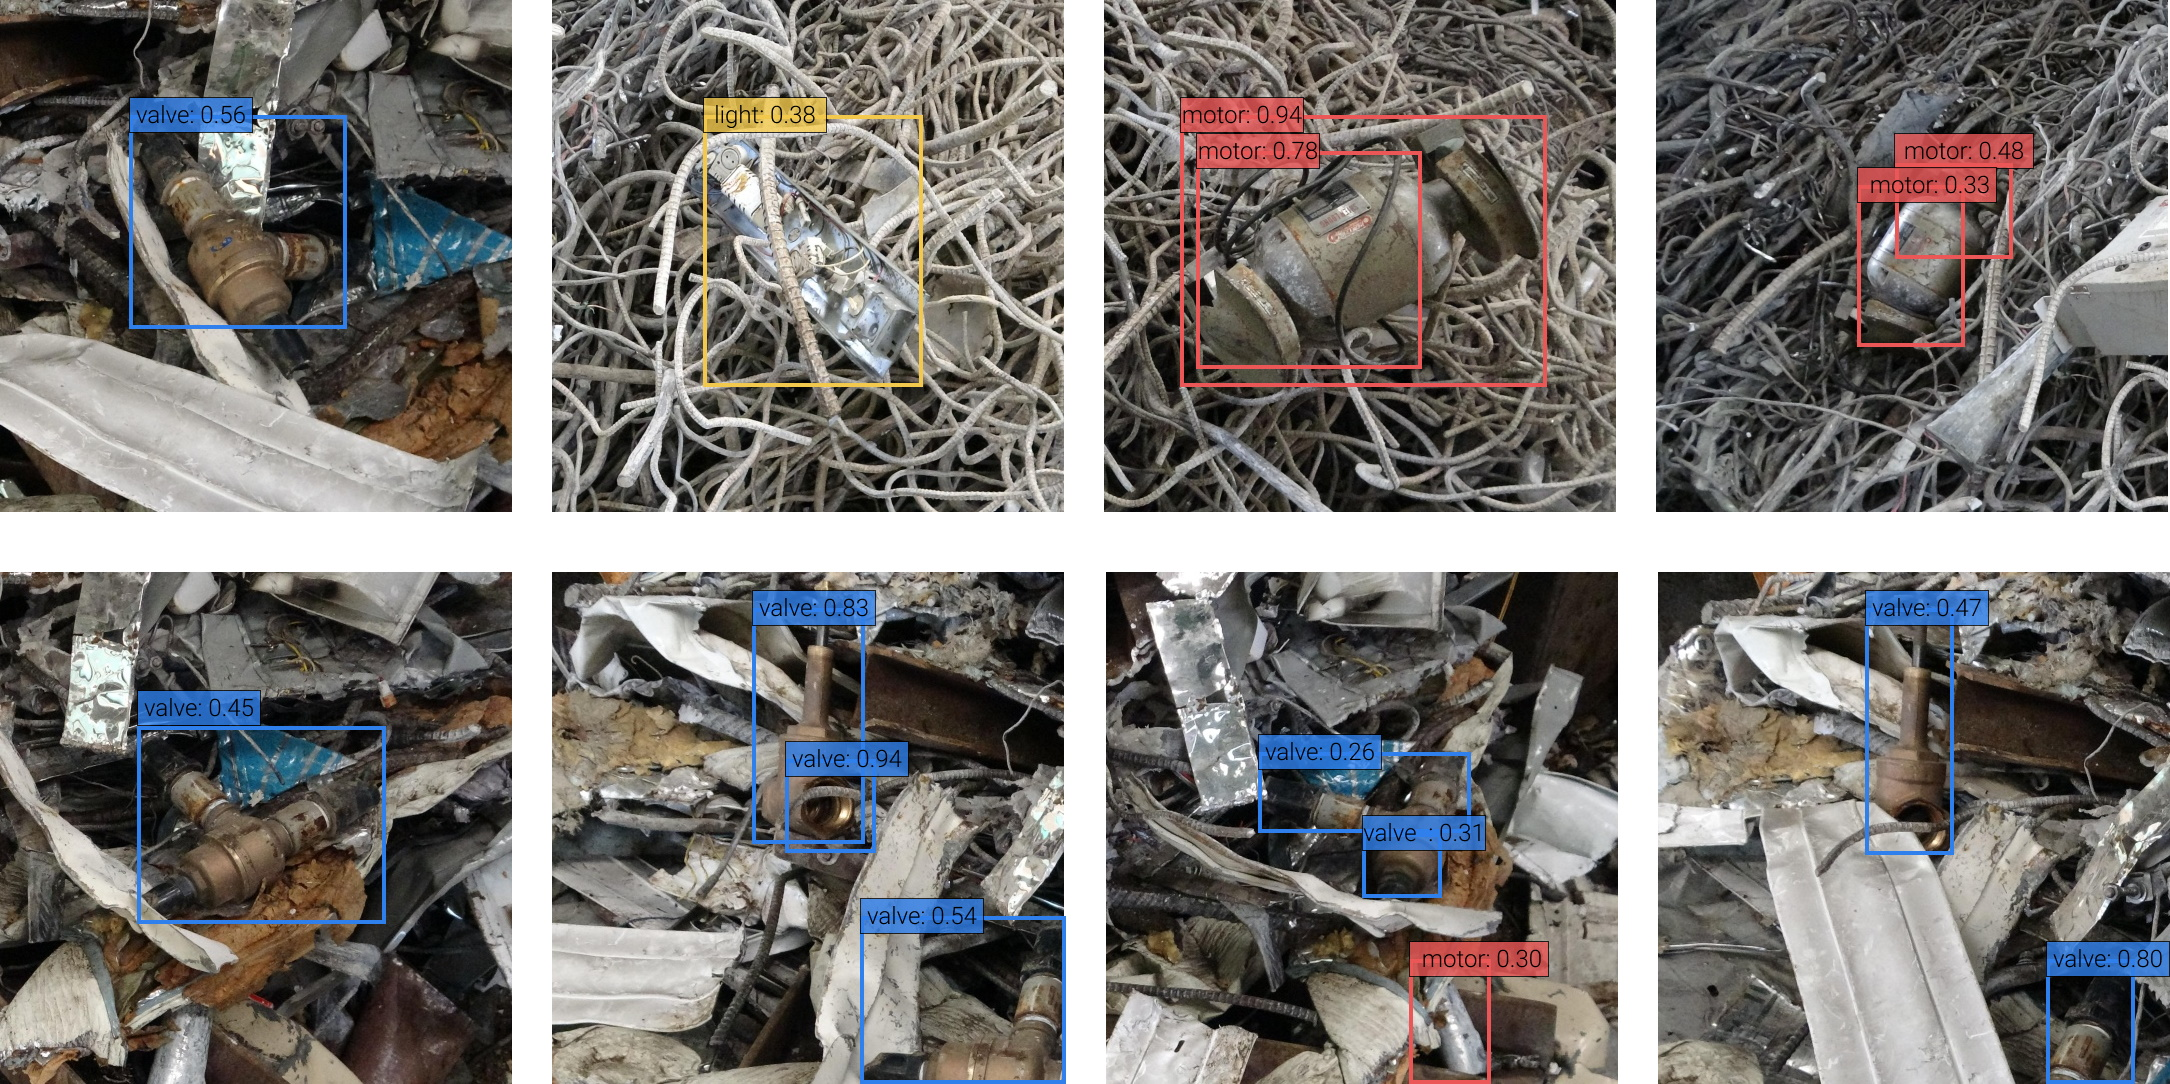 Image of scrap metal with AI-detected labels for various kinds of items overlaid.